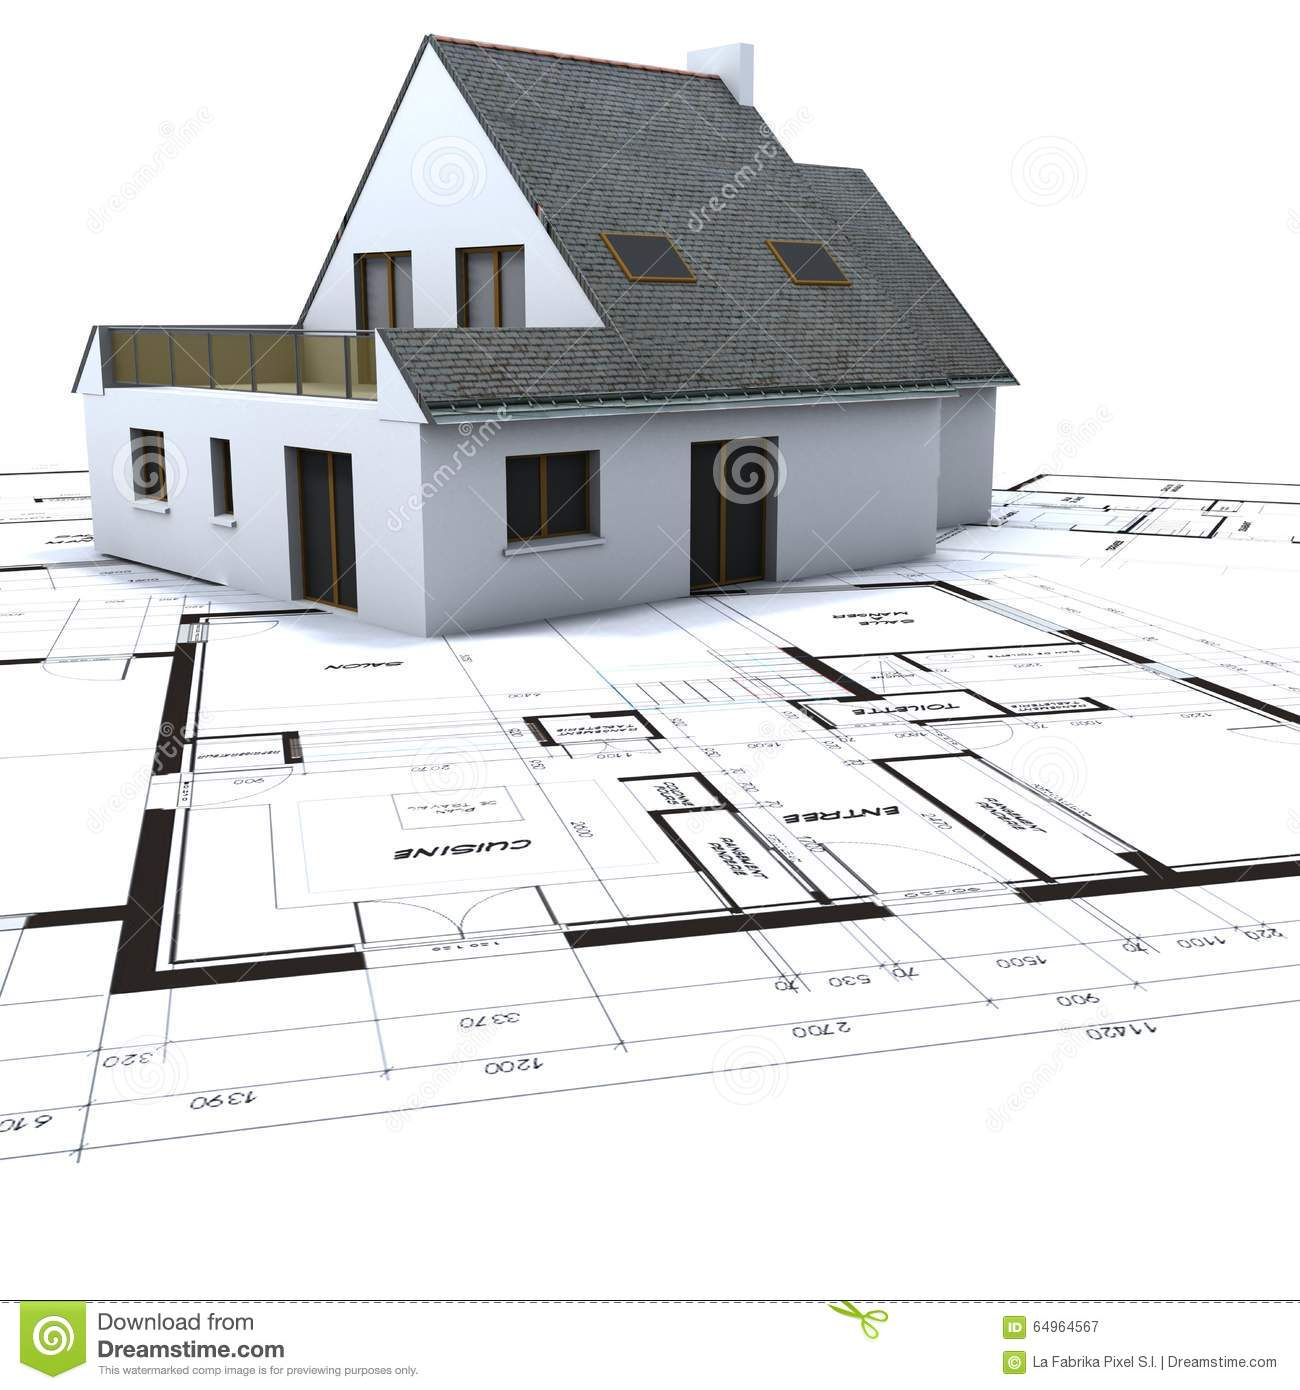 Housing project overview stock illustration image 64964567 for Best housing projects